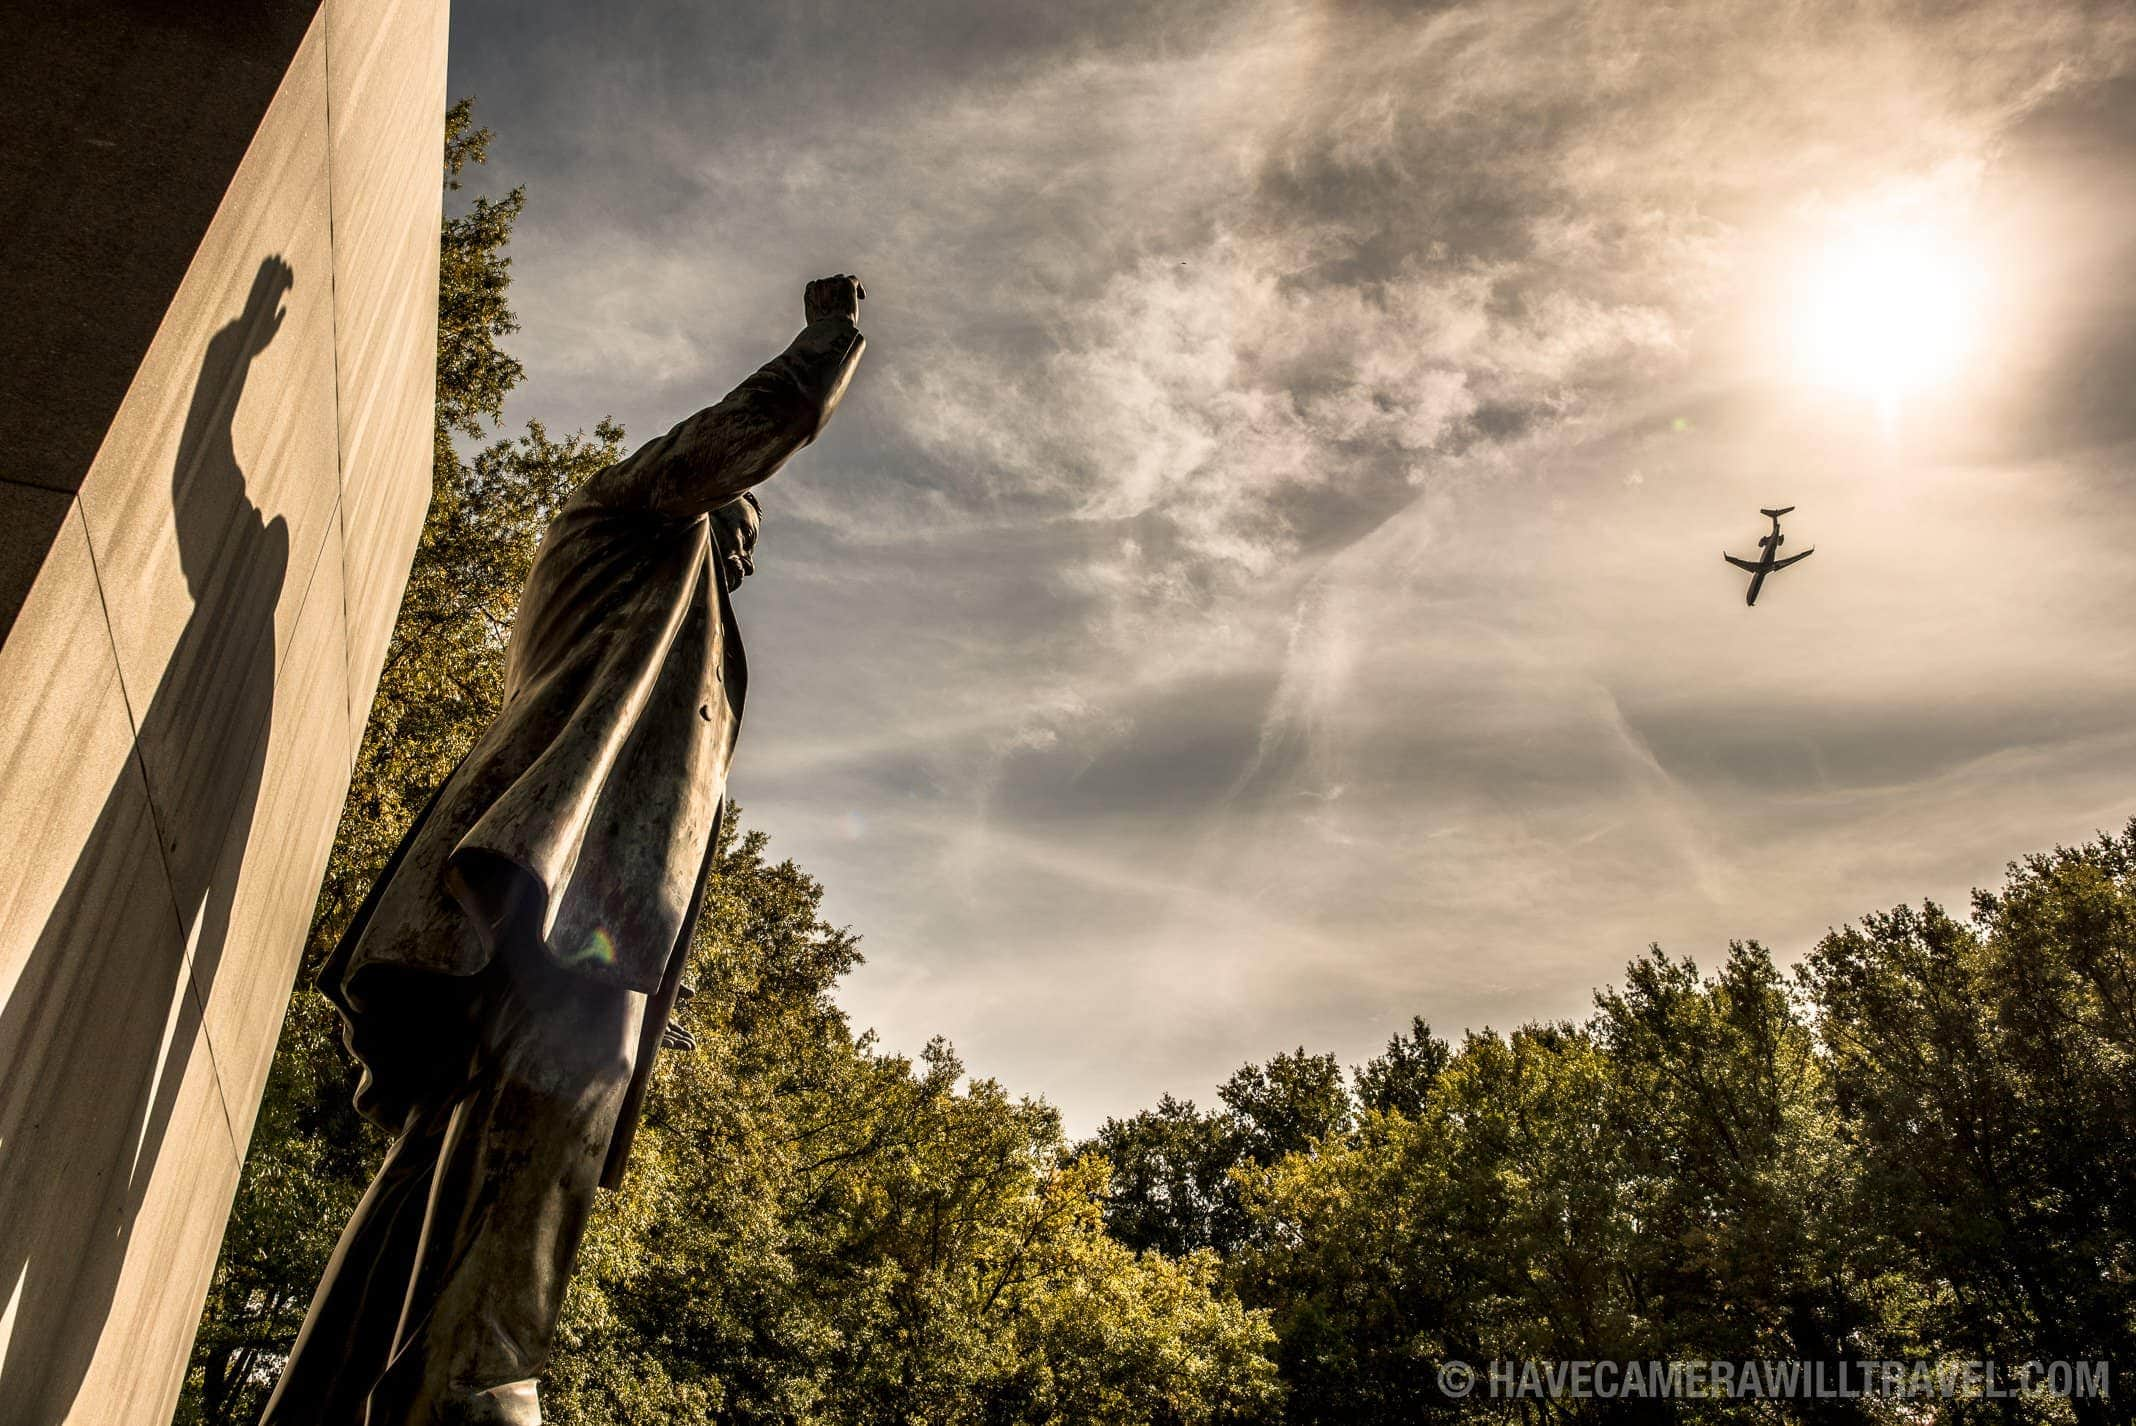 Theodore Roosevelt Memorial with Plane and Sun